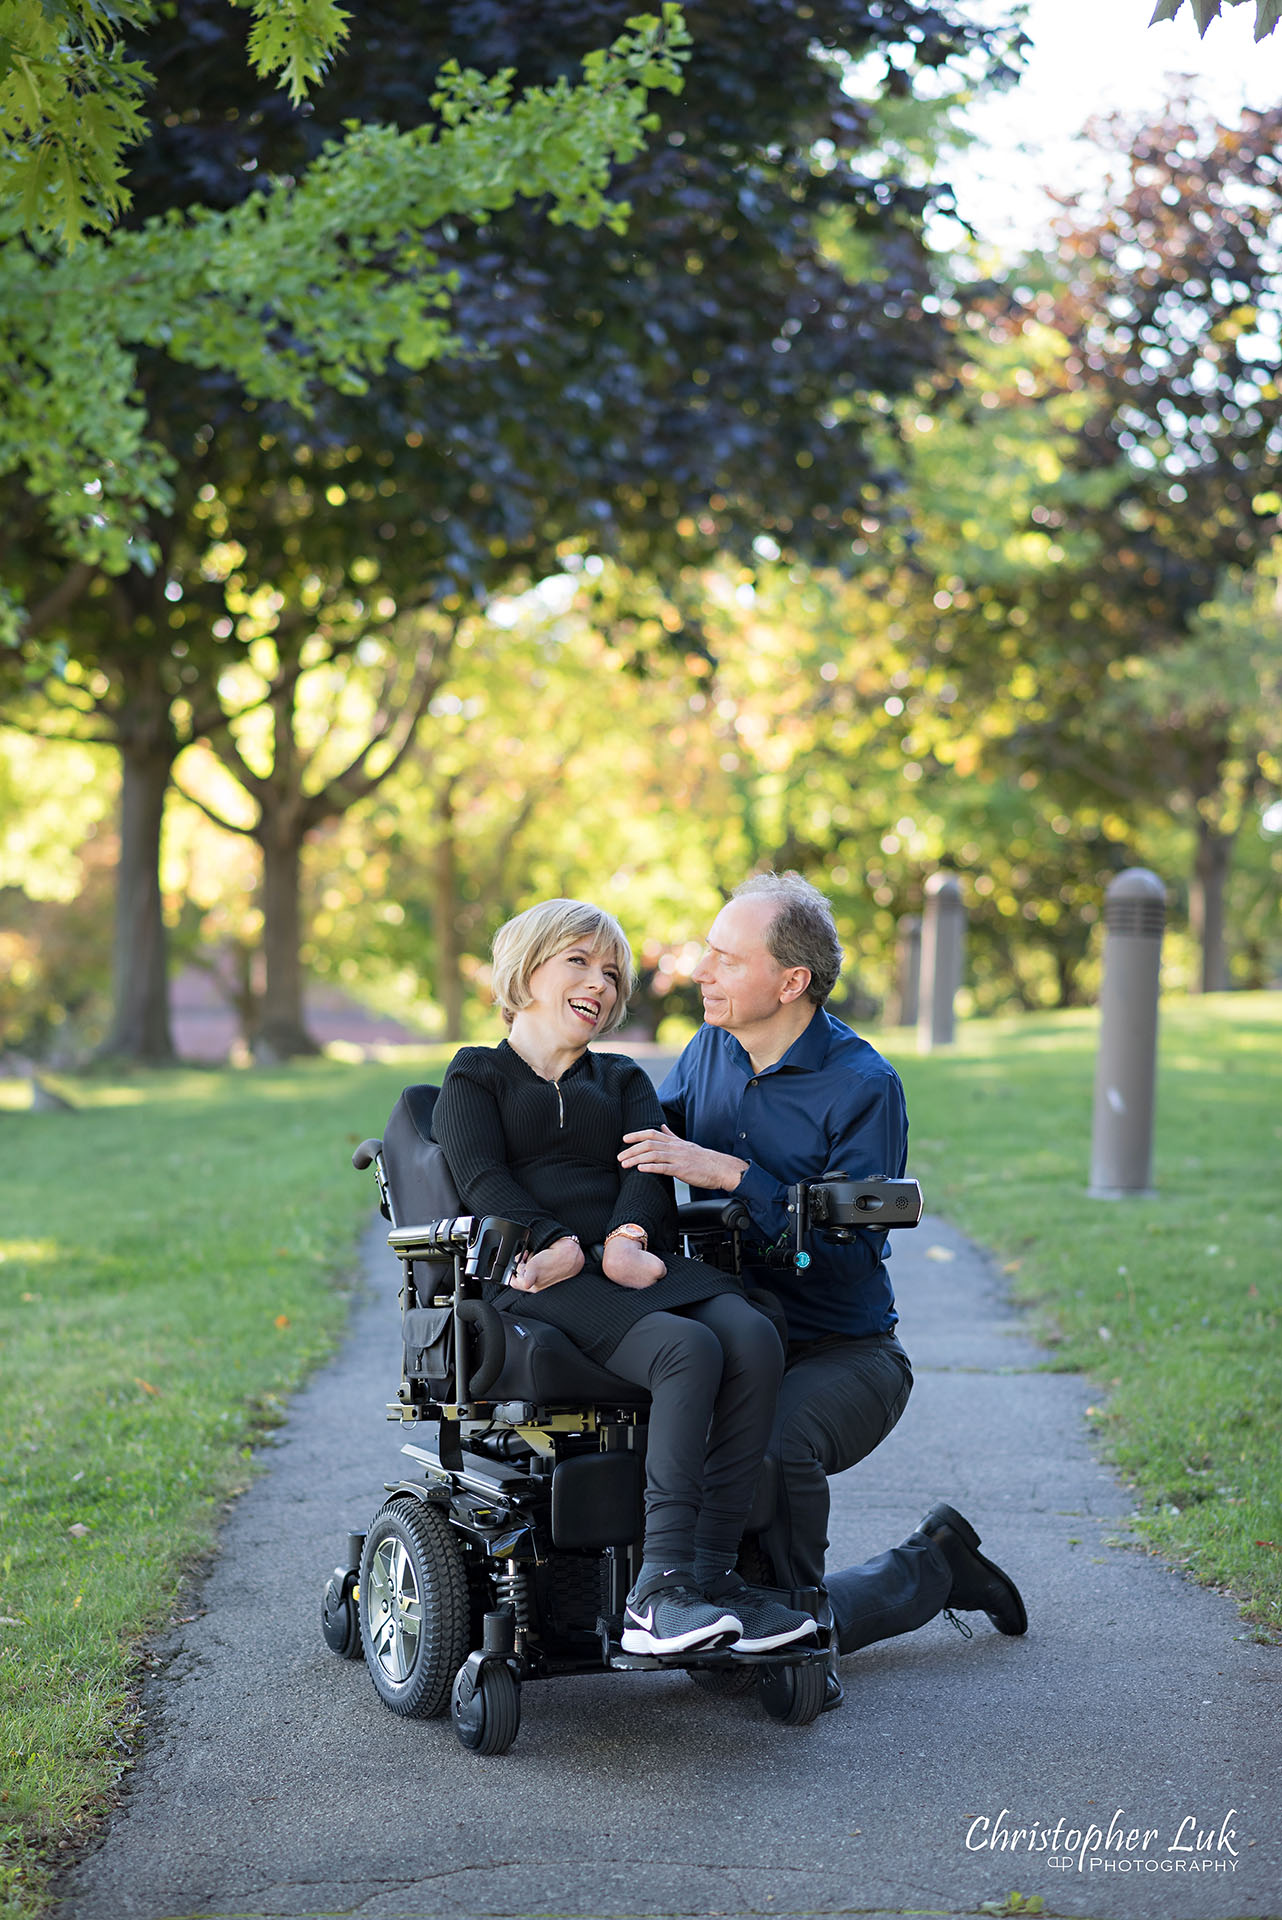 Christopher Luk Toronto Wedding Photographer Whitby Durham Engagement Session Bride Groom Candid Natural Photojournalistic Wheelchair Path Pathway Kneel Smile